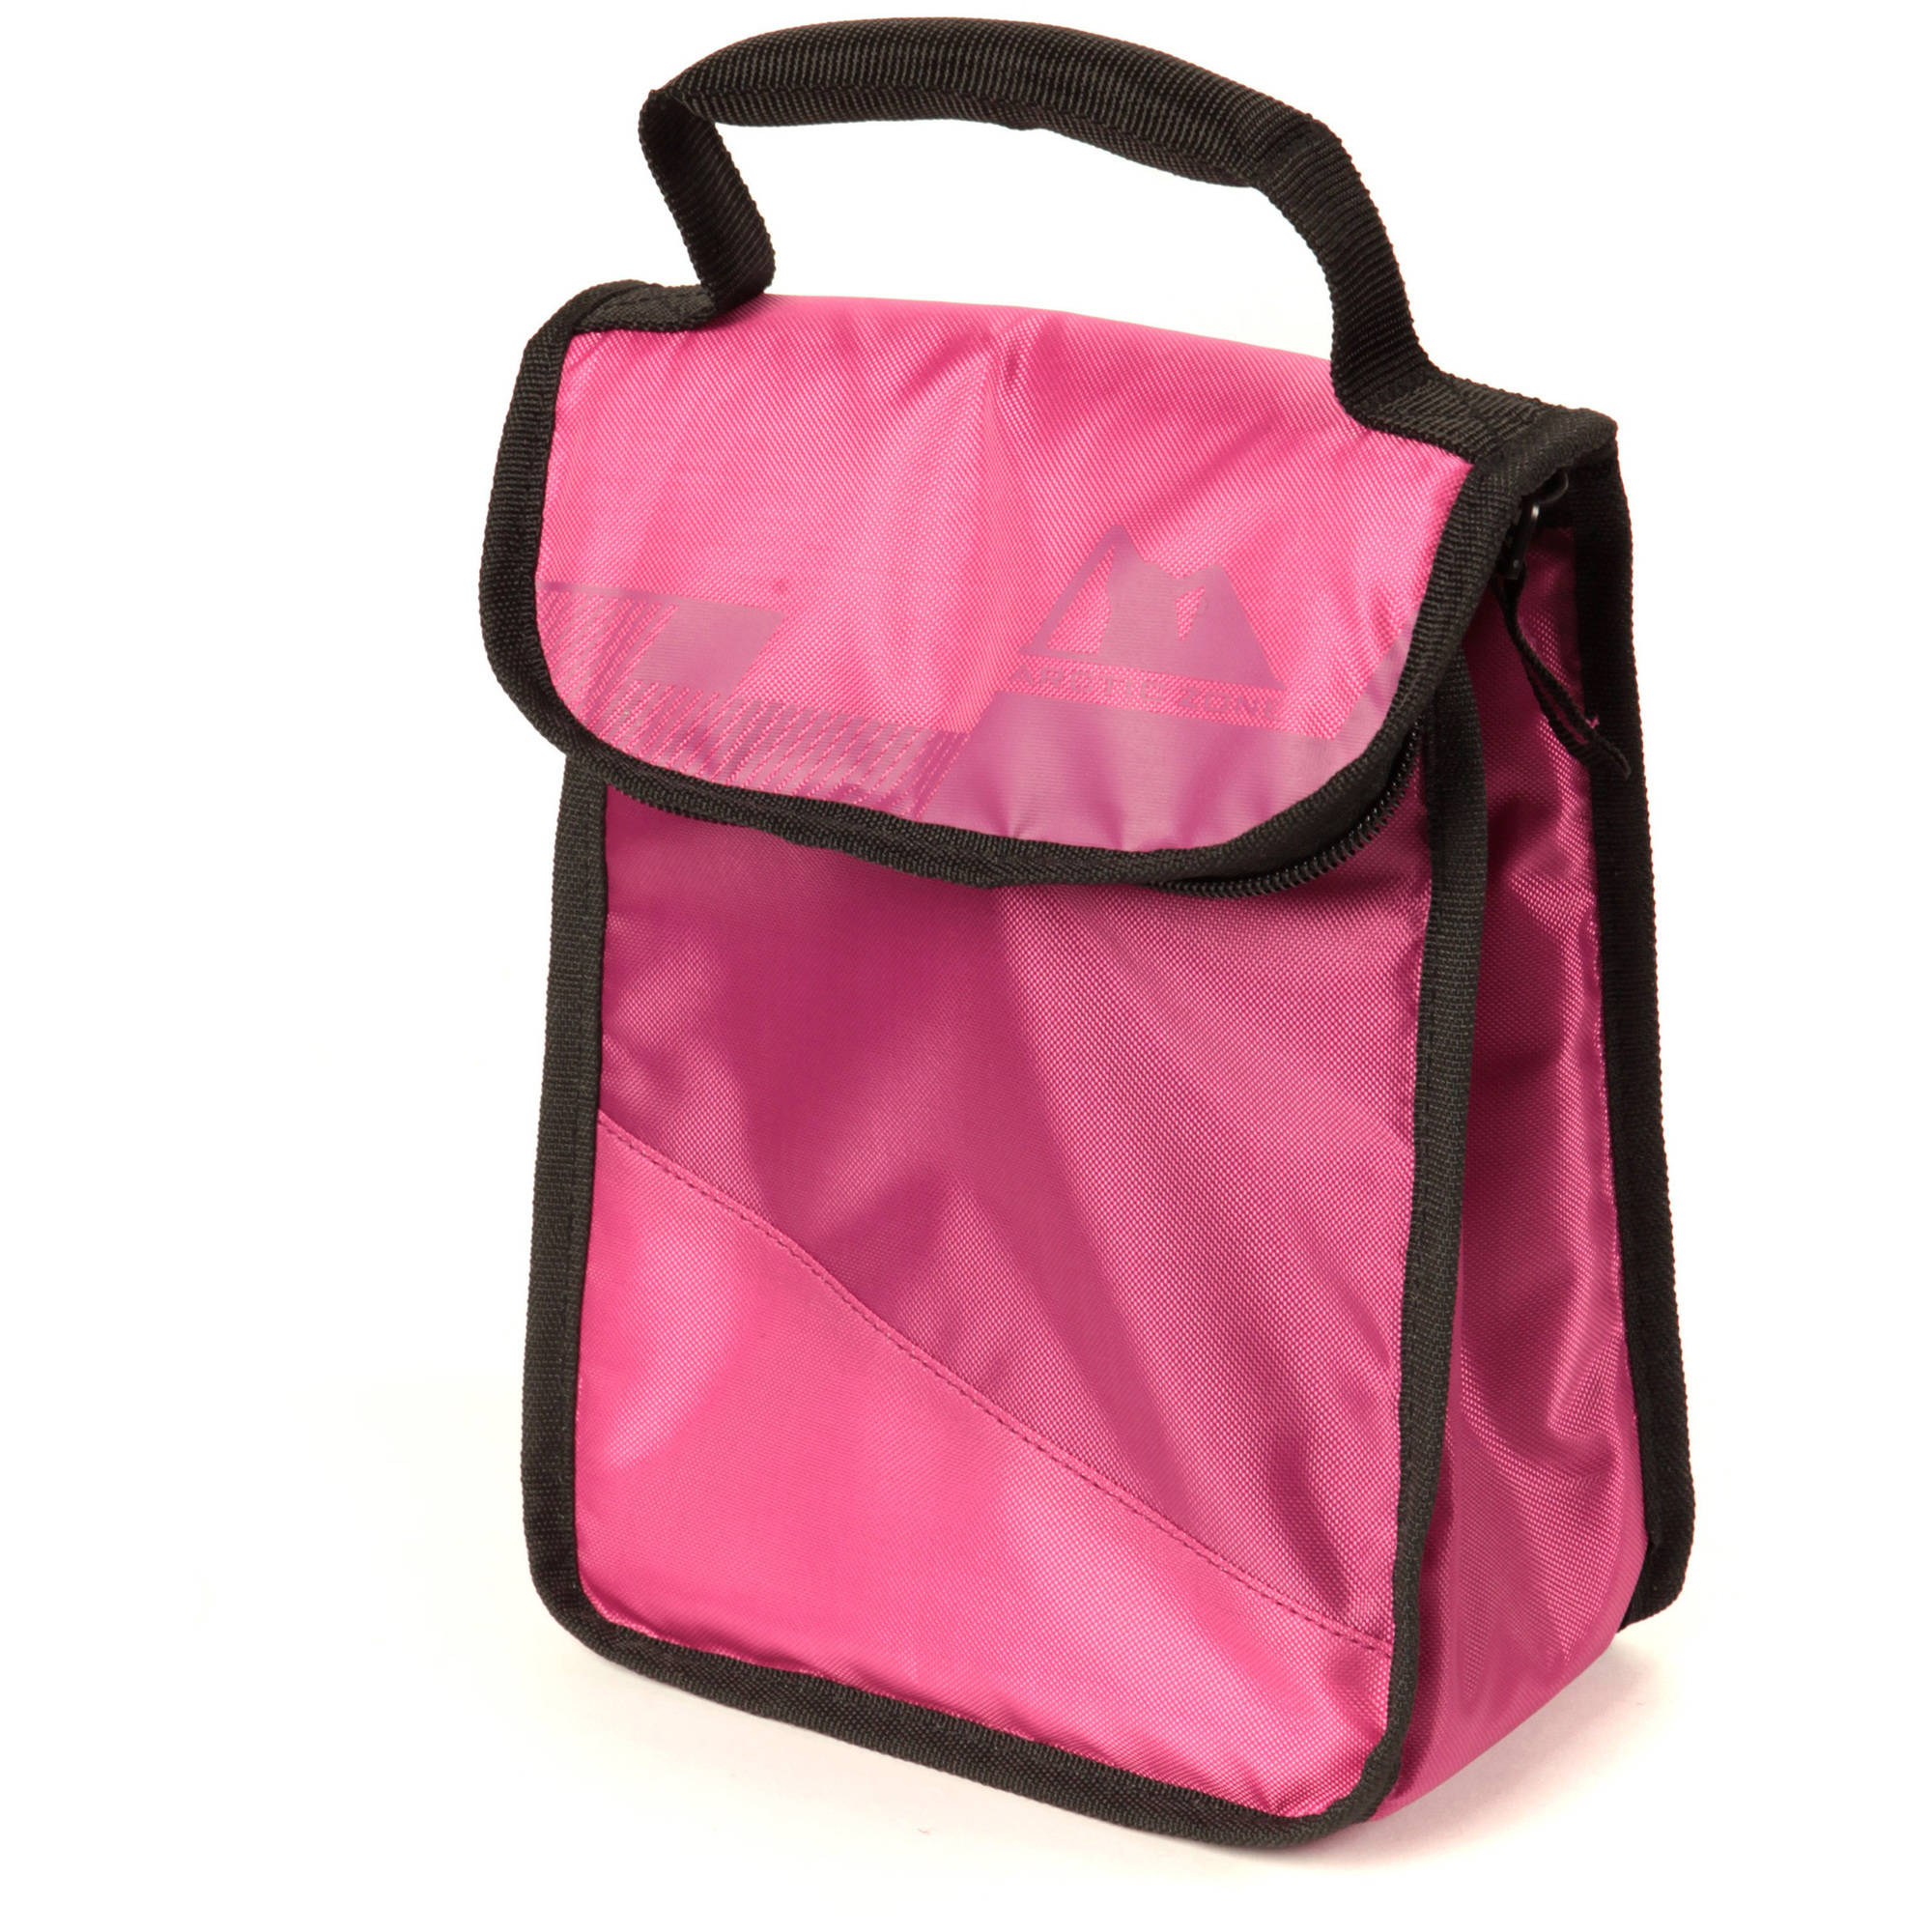 Arctic Zone Pink Hi Top Munch Sack Lunch Bag, 1 Each